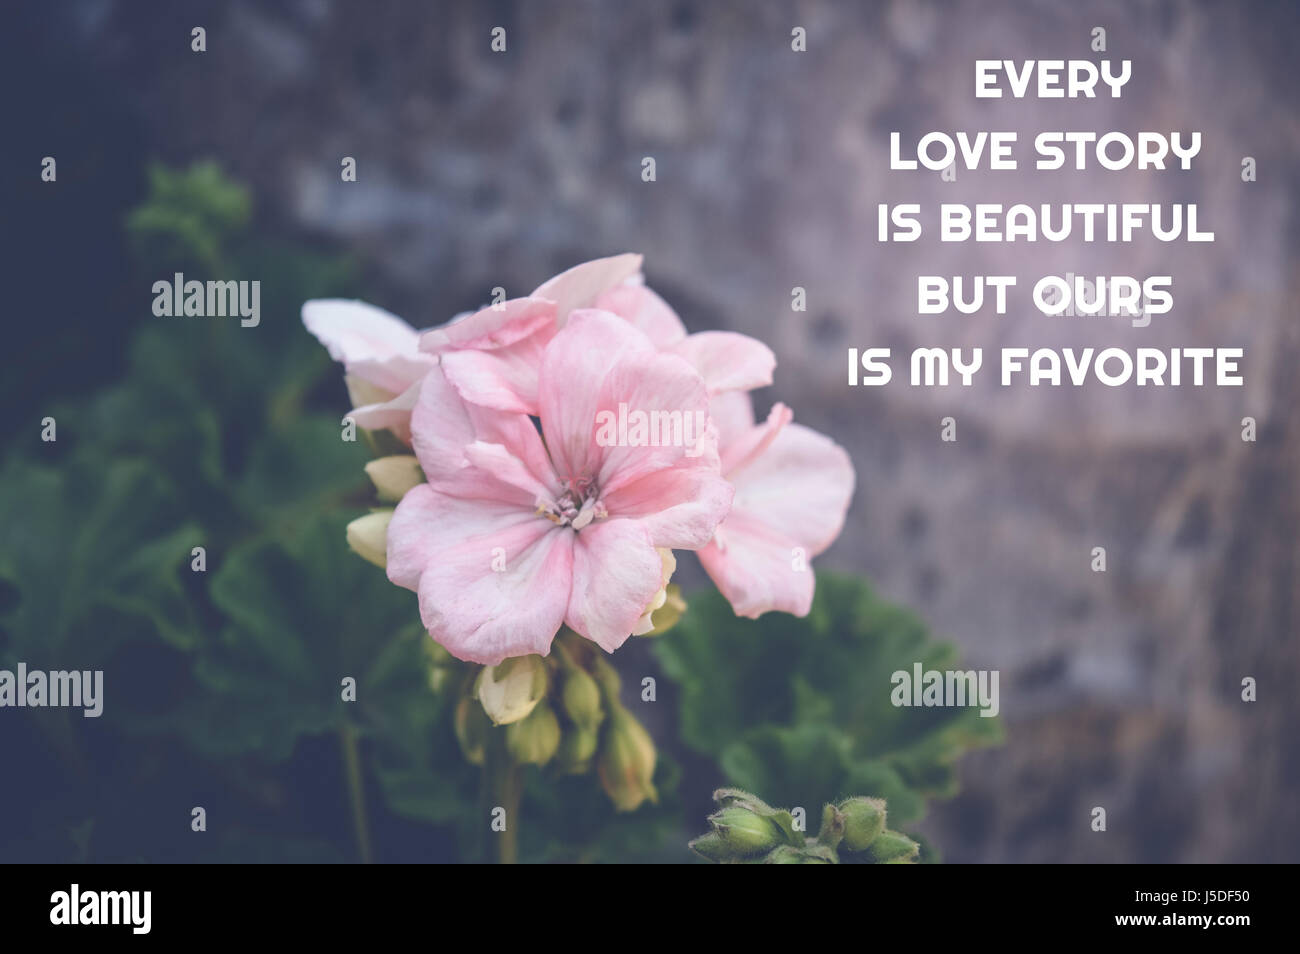 Love Flower Quotes Love Quote With Pink Flower Background Every Love Story Is